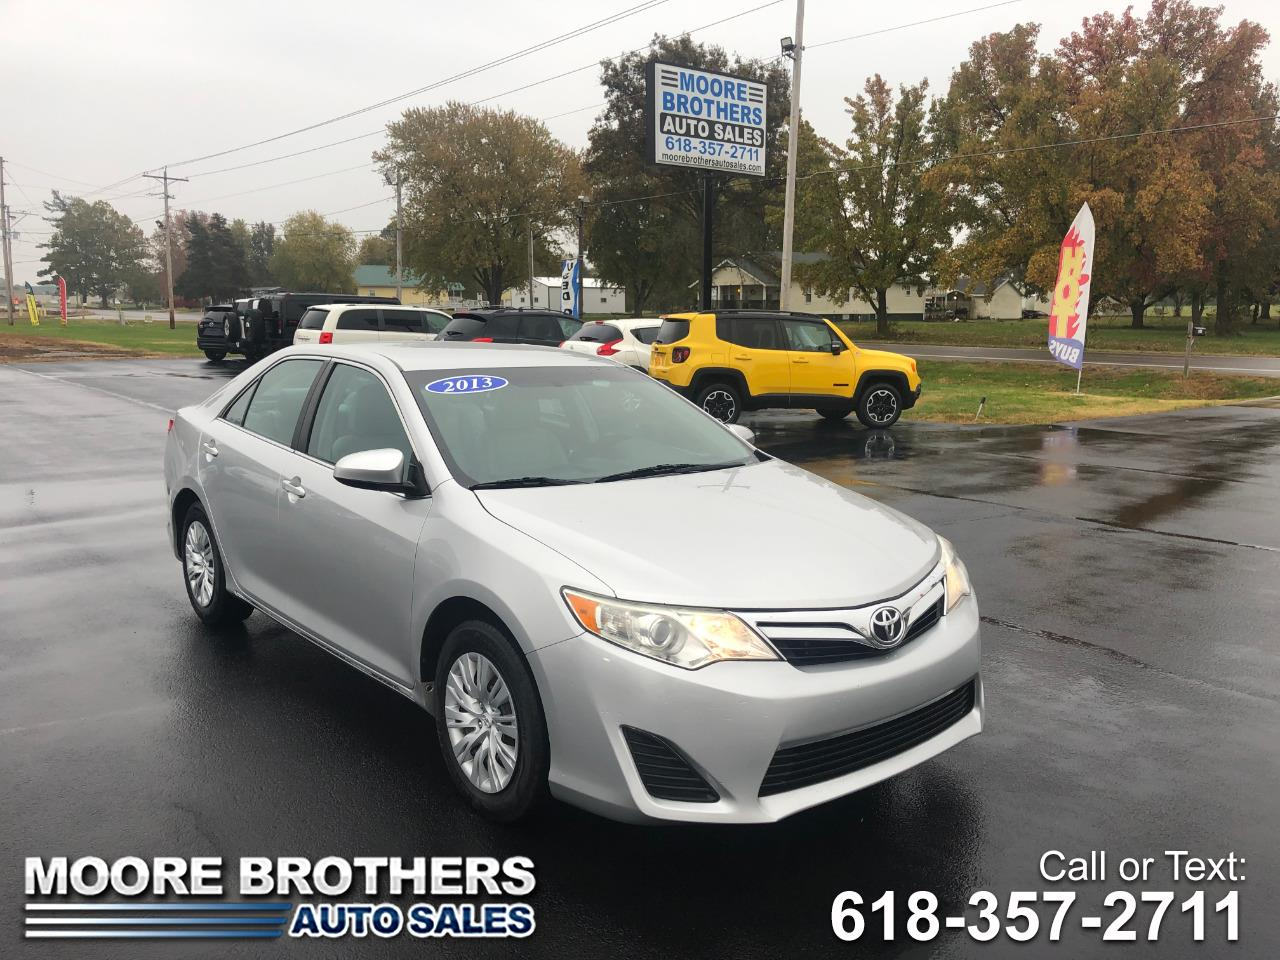 Toyota Camry 4dr Sdn I4 Auto LE (Natl) 2013